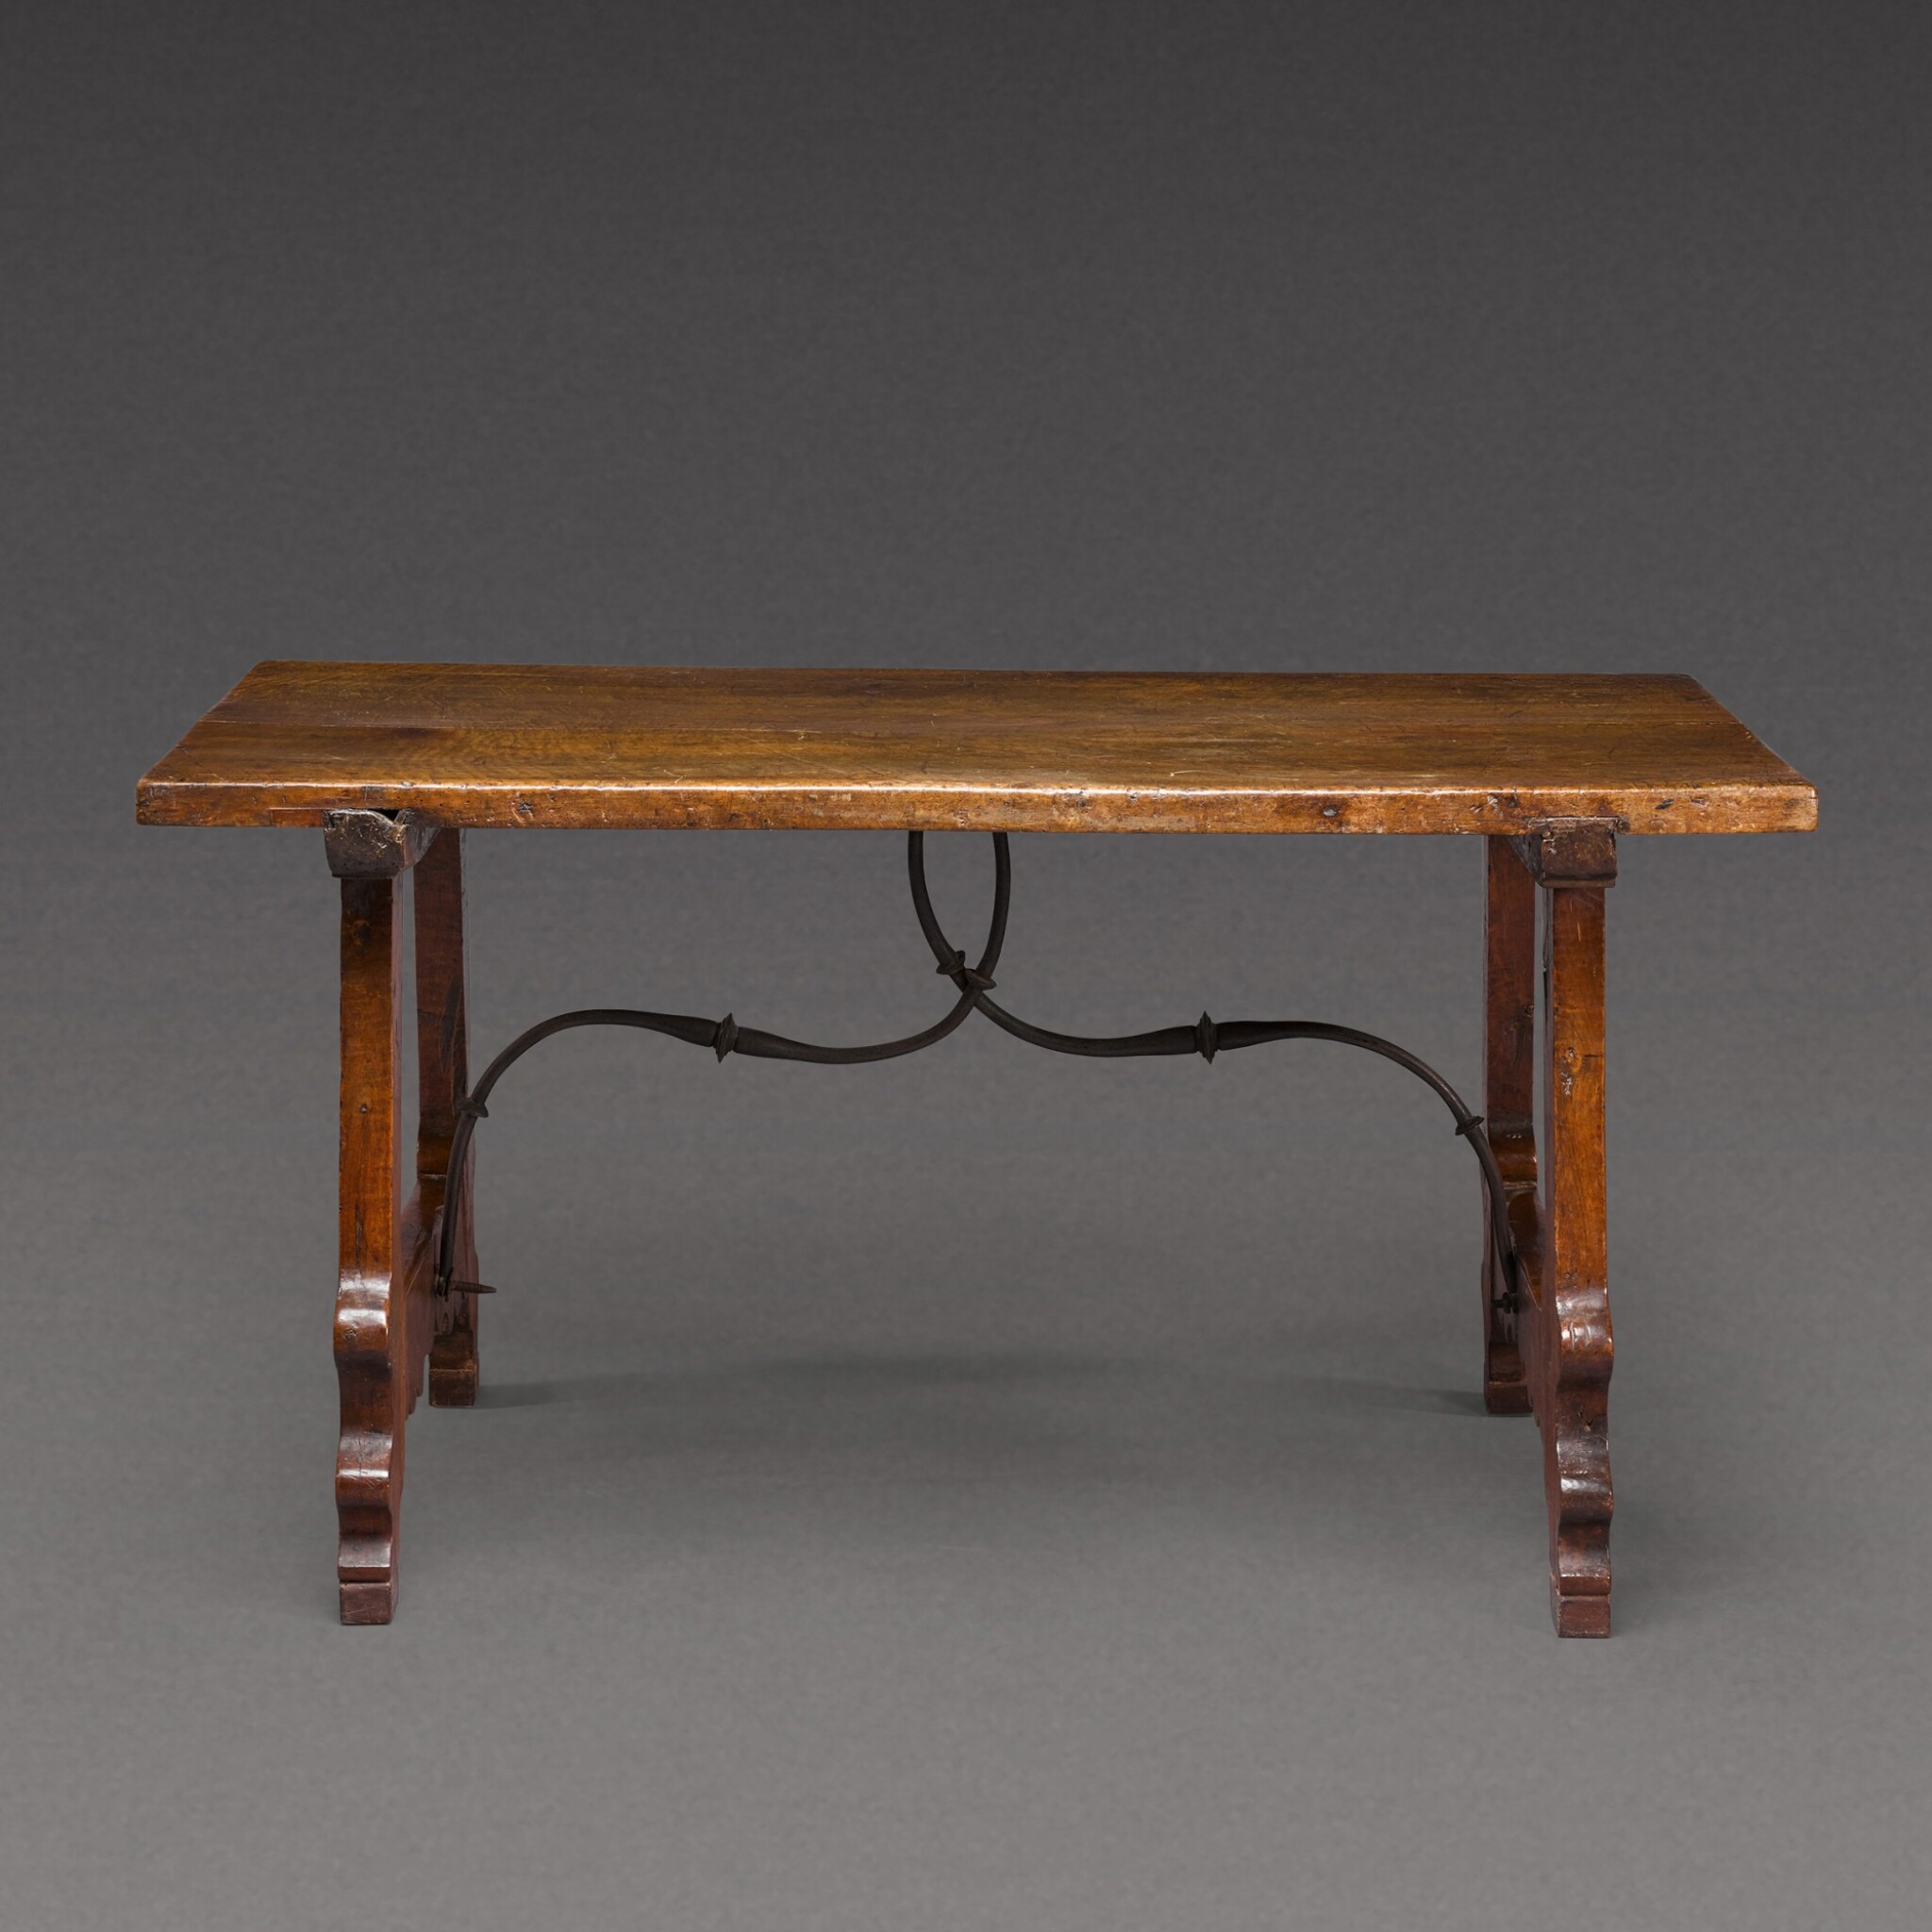 View 1 of Lot 176. A Spanish Baroque walnut trestle table, 17th century.